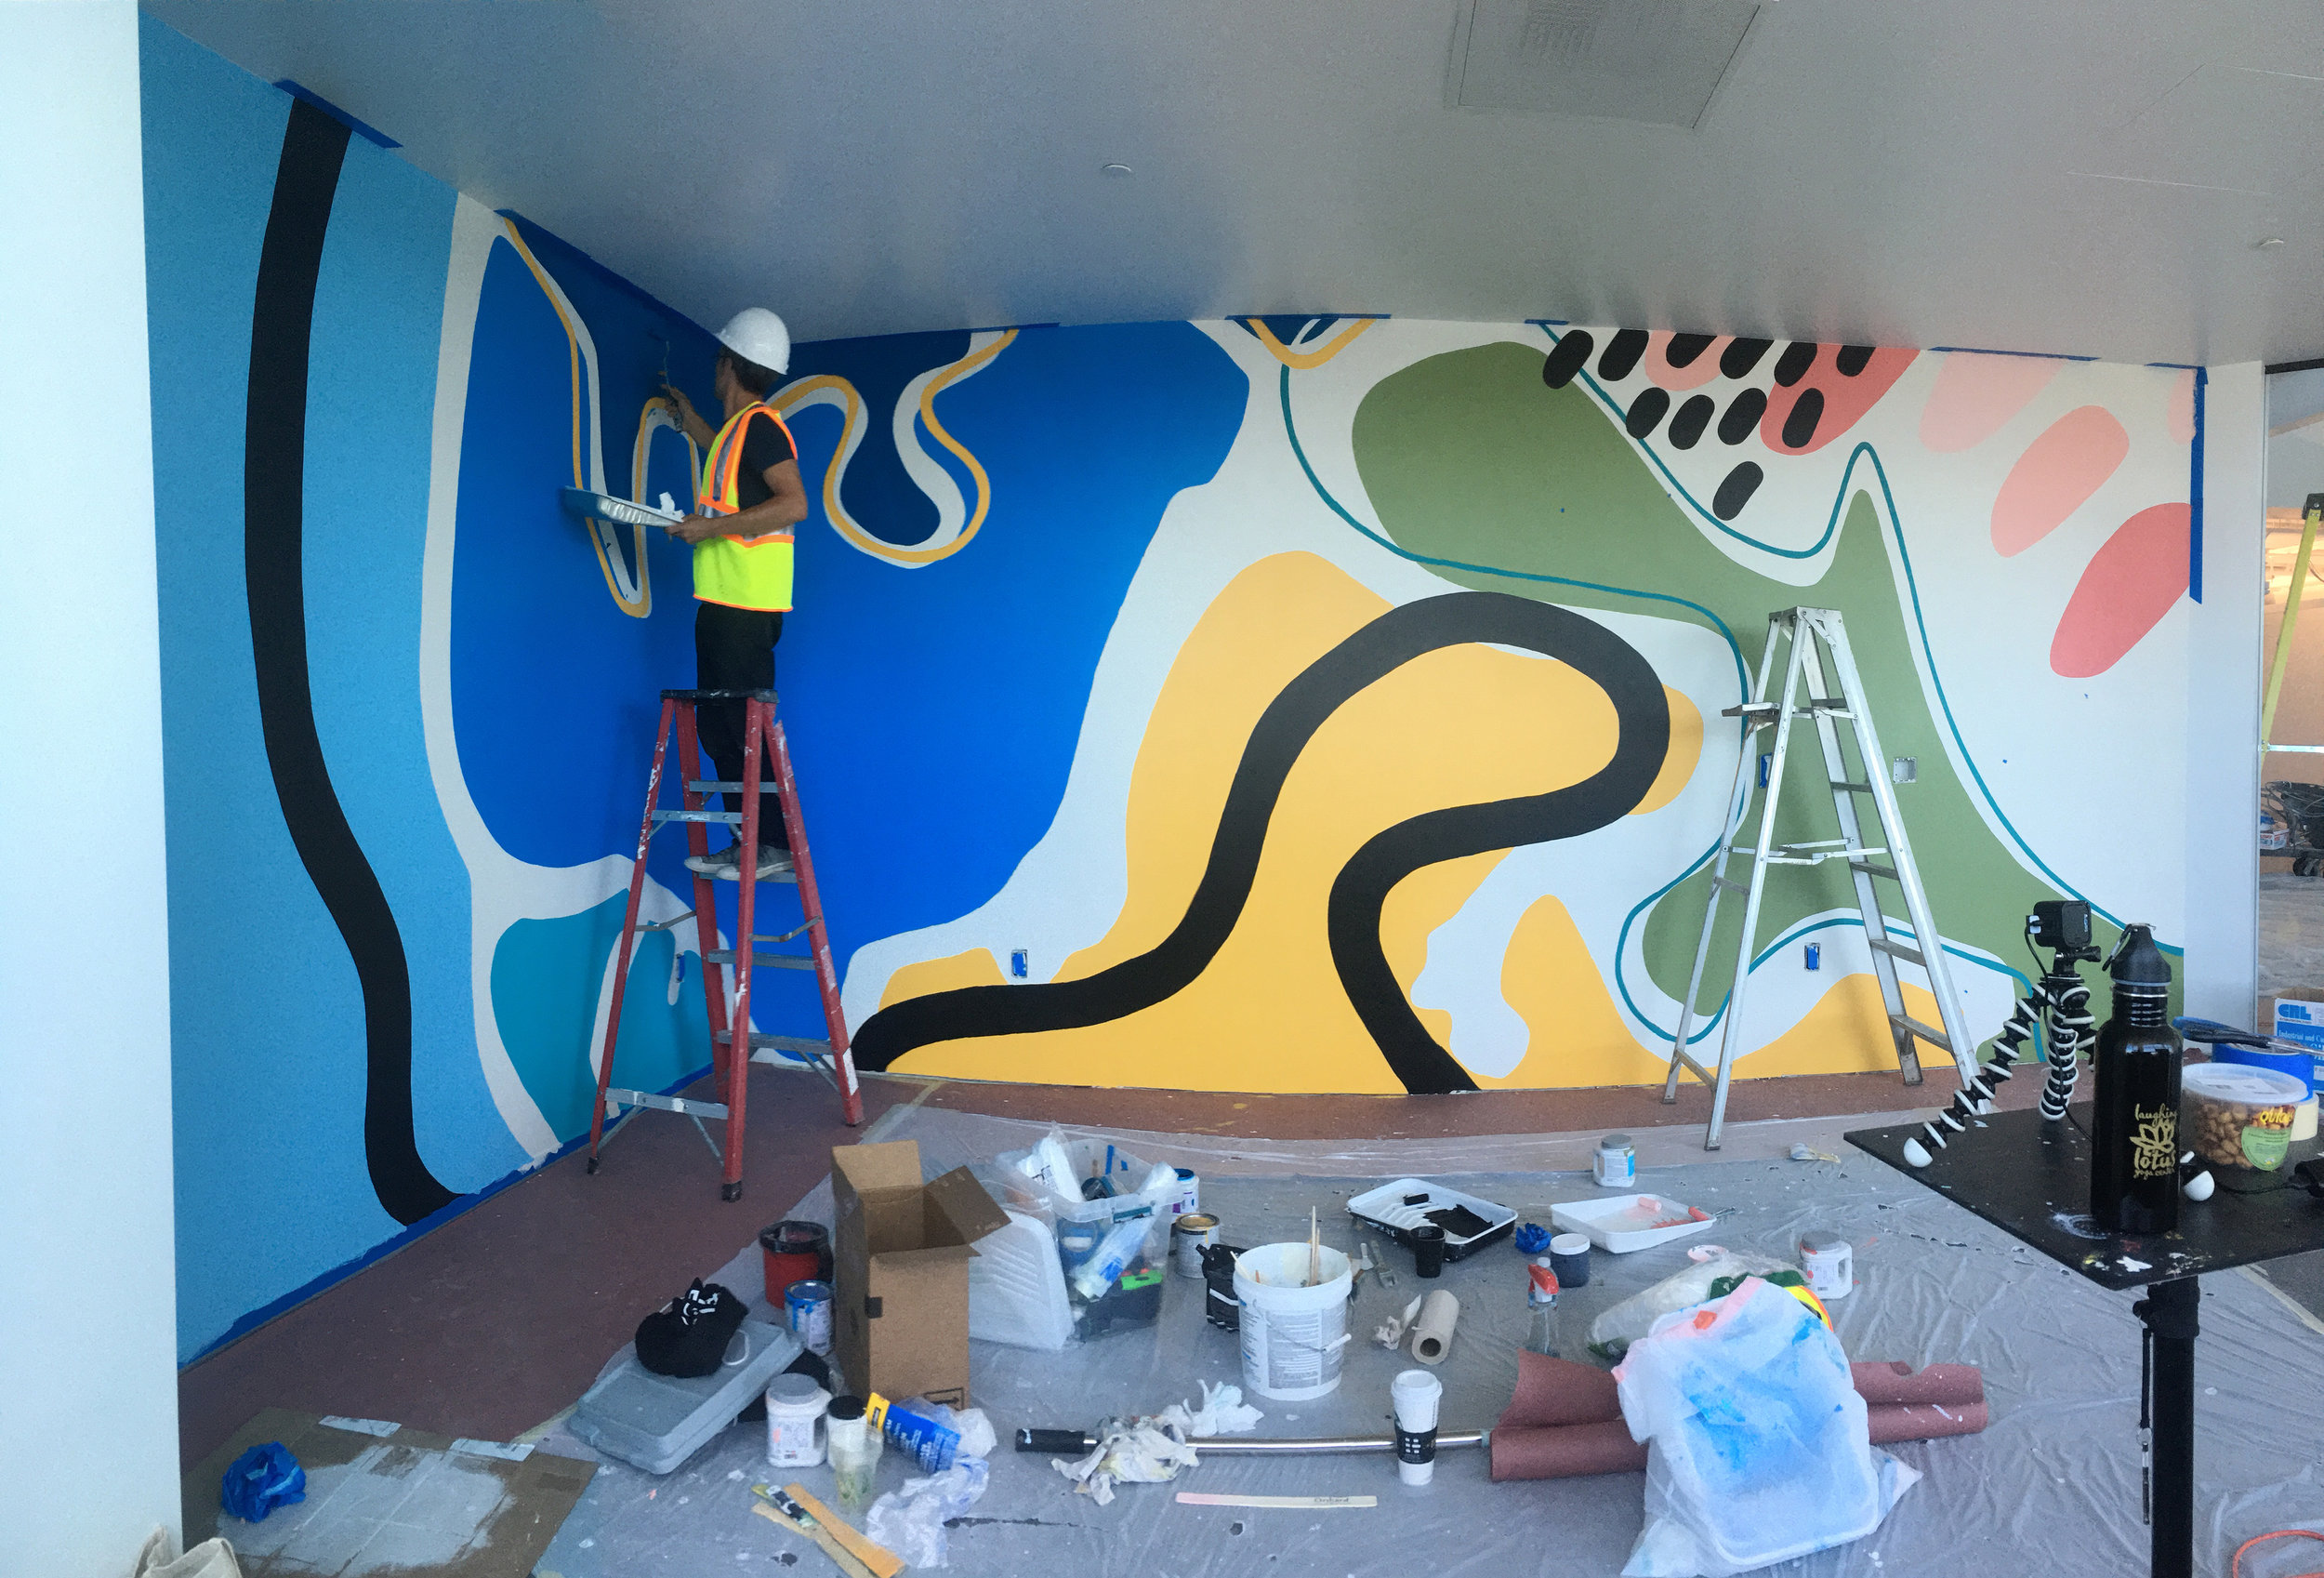 Office-commercial-mural-san-francisco-google-wall-and-wall-mural-company_004.jpeg